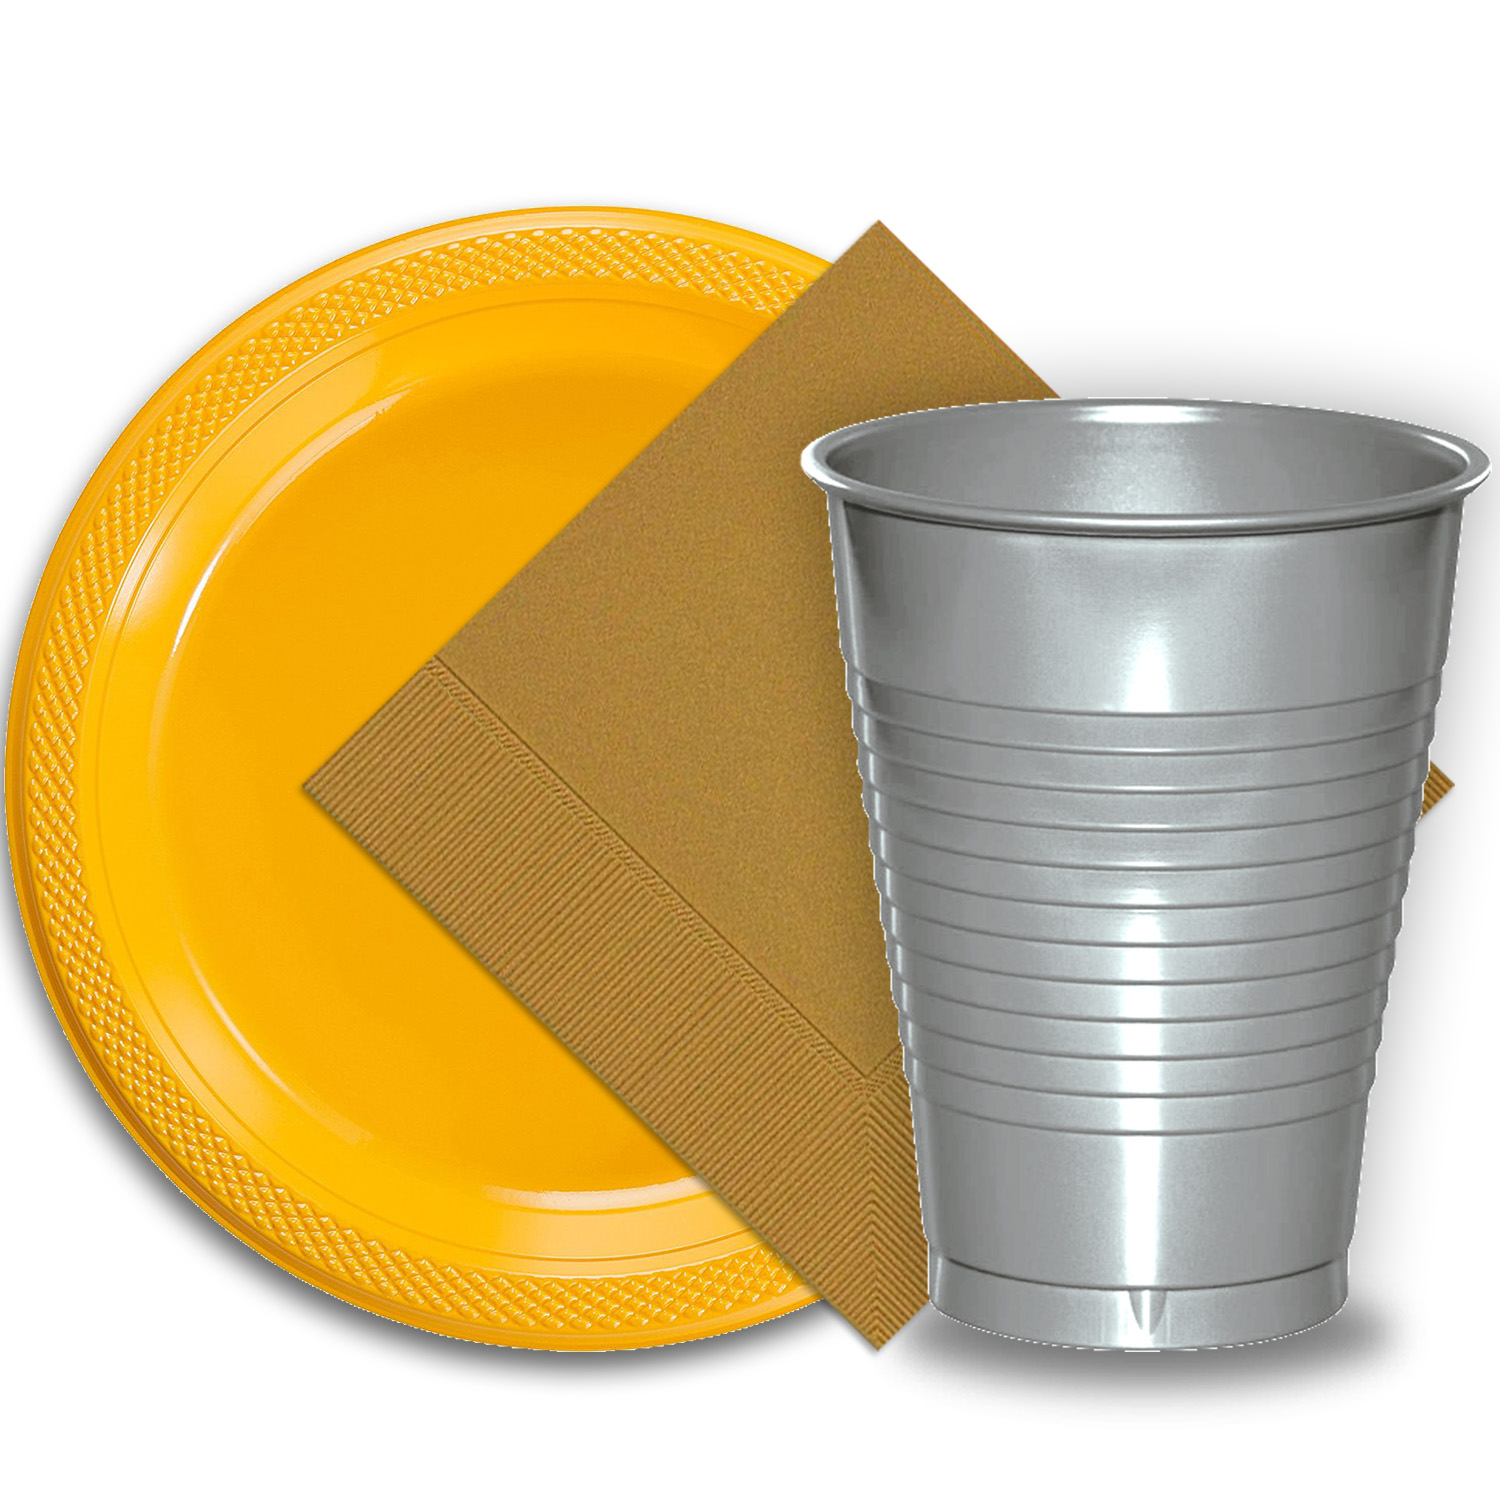 "50 Yellow Plastic Plates (9""), 50 Silver Plastic Cups (12 oz.), and 50 Gold Paper Napkins, Dazzelling Colored Disposable Party Supplies Tableware Set for Fifty Guests."